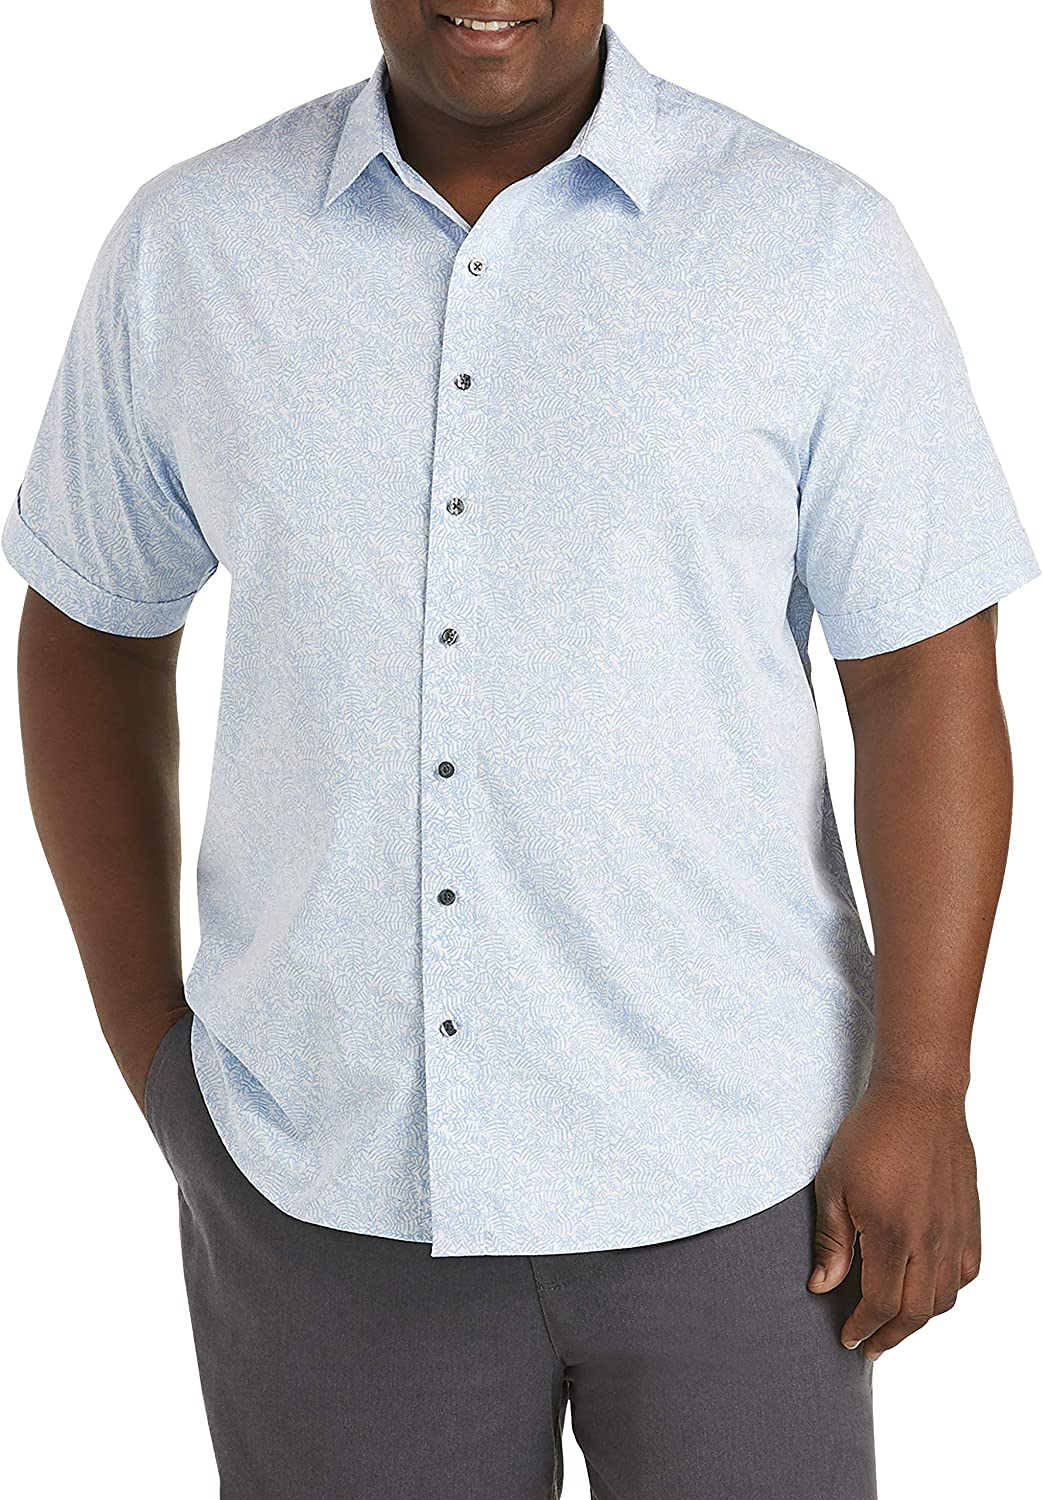 DXL Synrgy Big and Tall Washed Leaf Print Sport Shirt, Blue/White